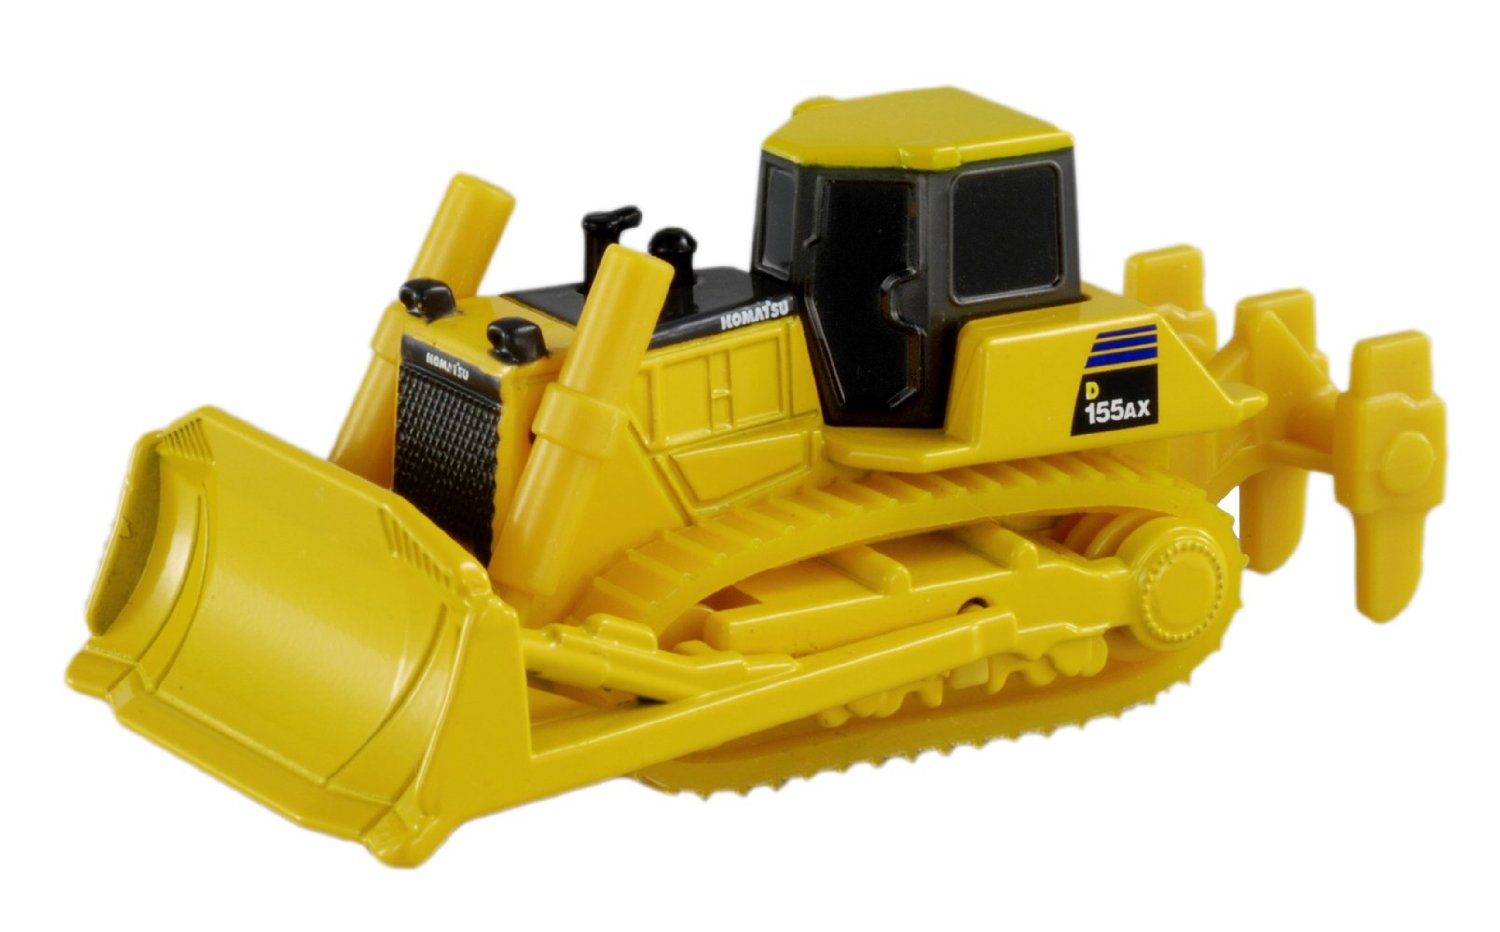 Cheap Komatsu Bulldozer Find Deals On Line At D31p Wiring Diagram Get Quotations Takara Tomy Tomica 056 D155ax 6